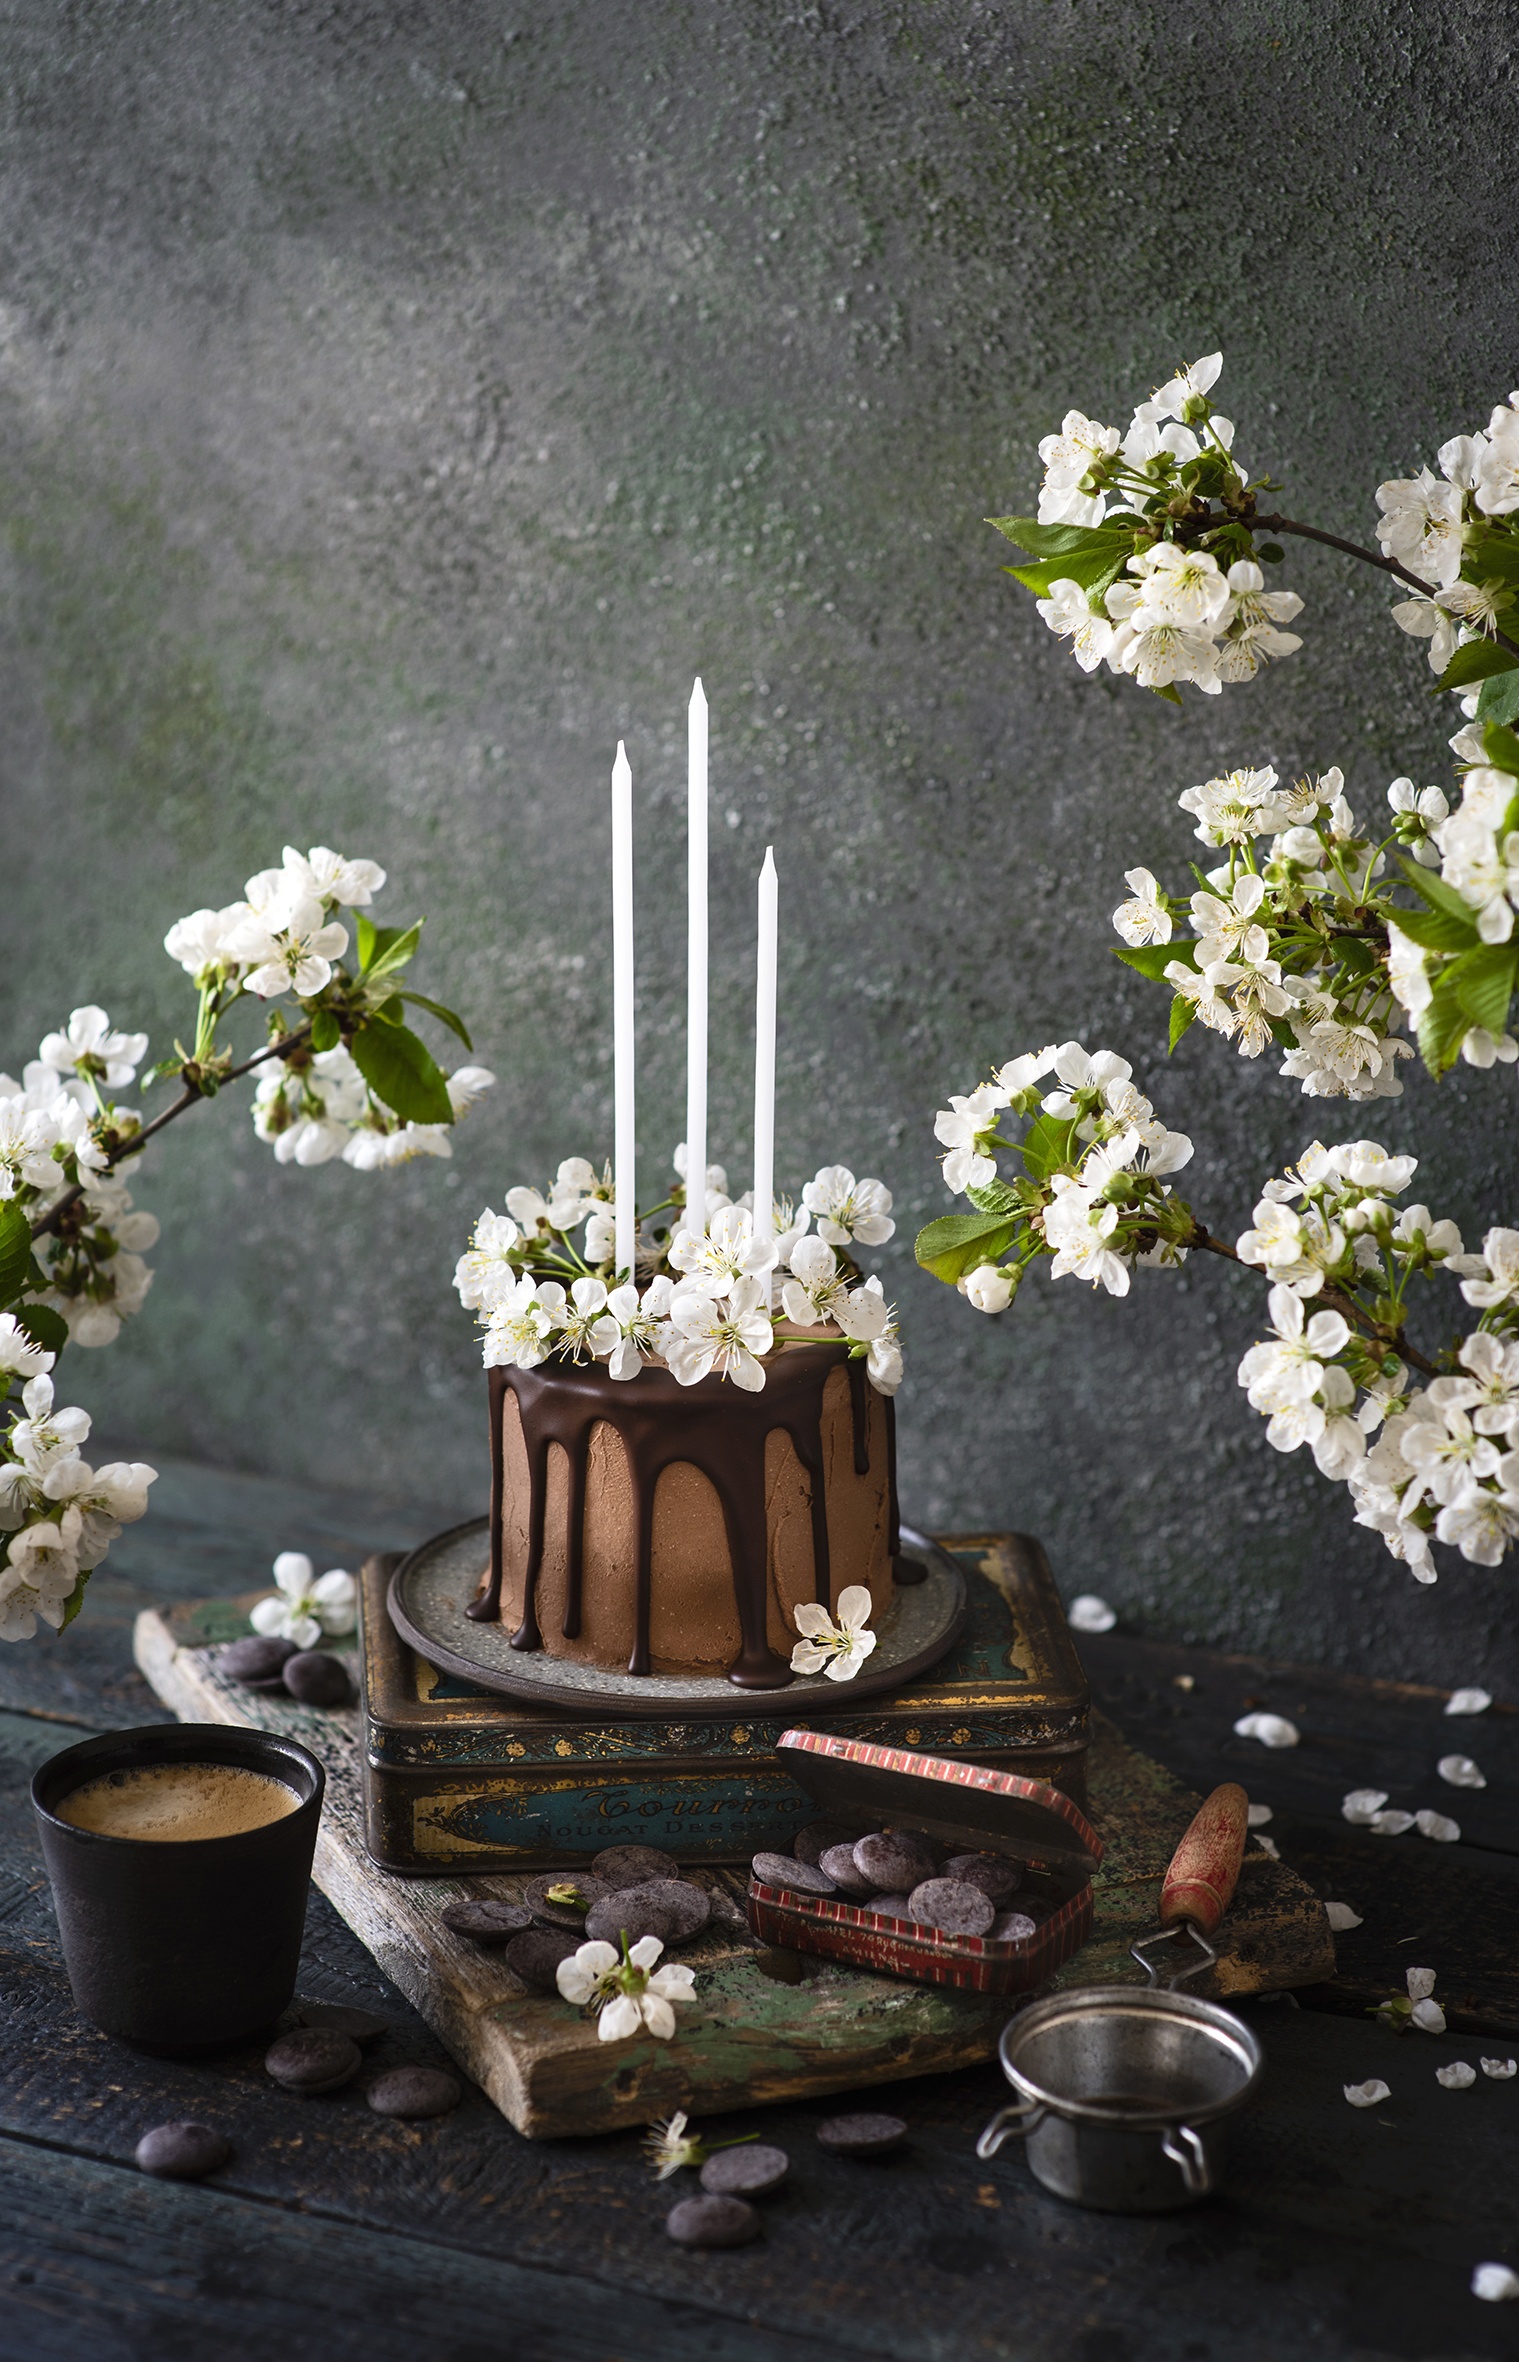 Image Chocolate Cakes Coffee Cappuccino Highball glass Food Candles Flowering trees  for Mobile phone Torte